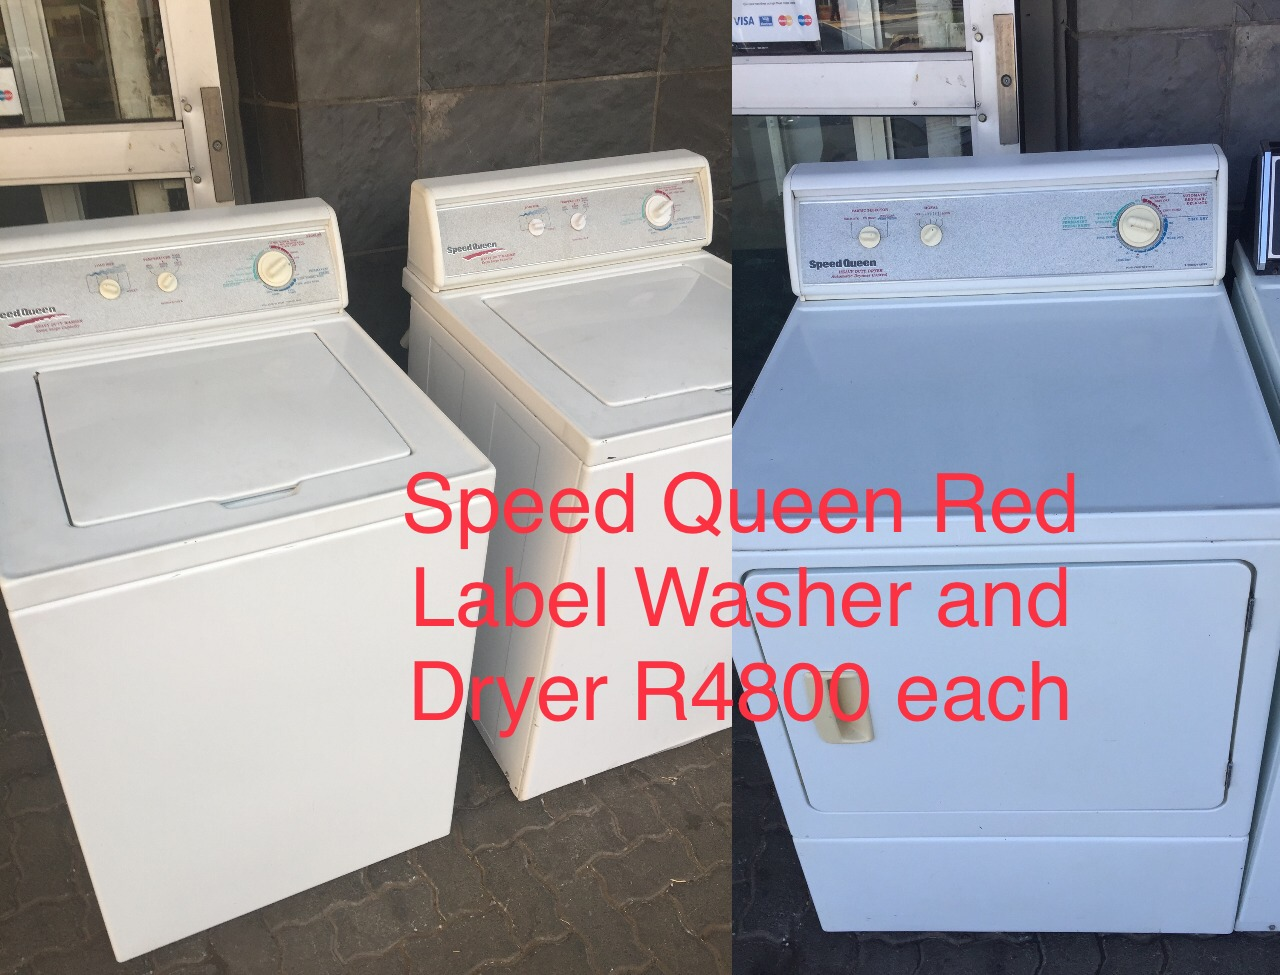 Speed Queen Washing Machines ans Dryers